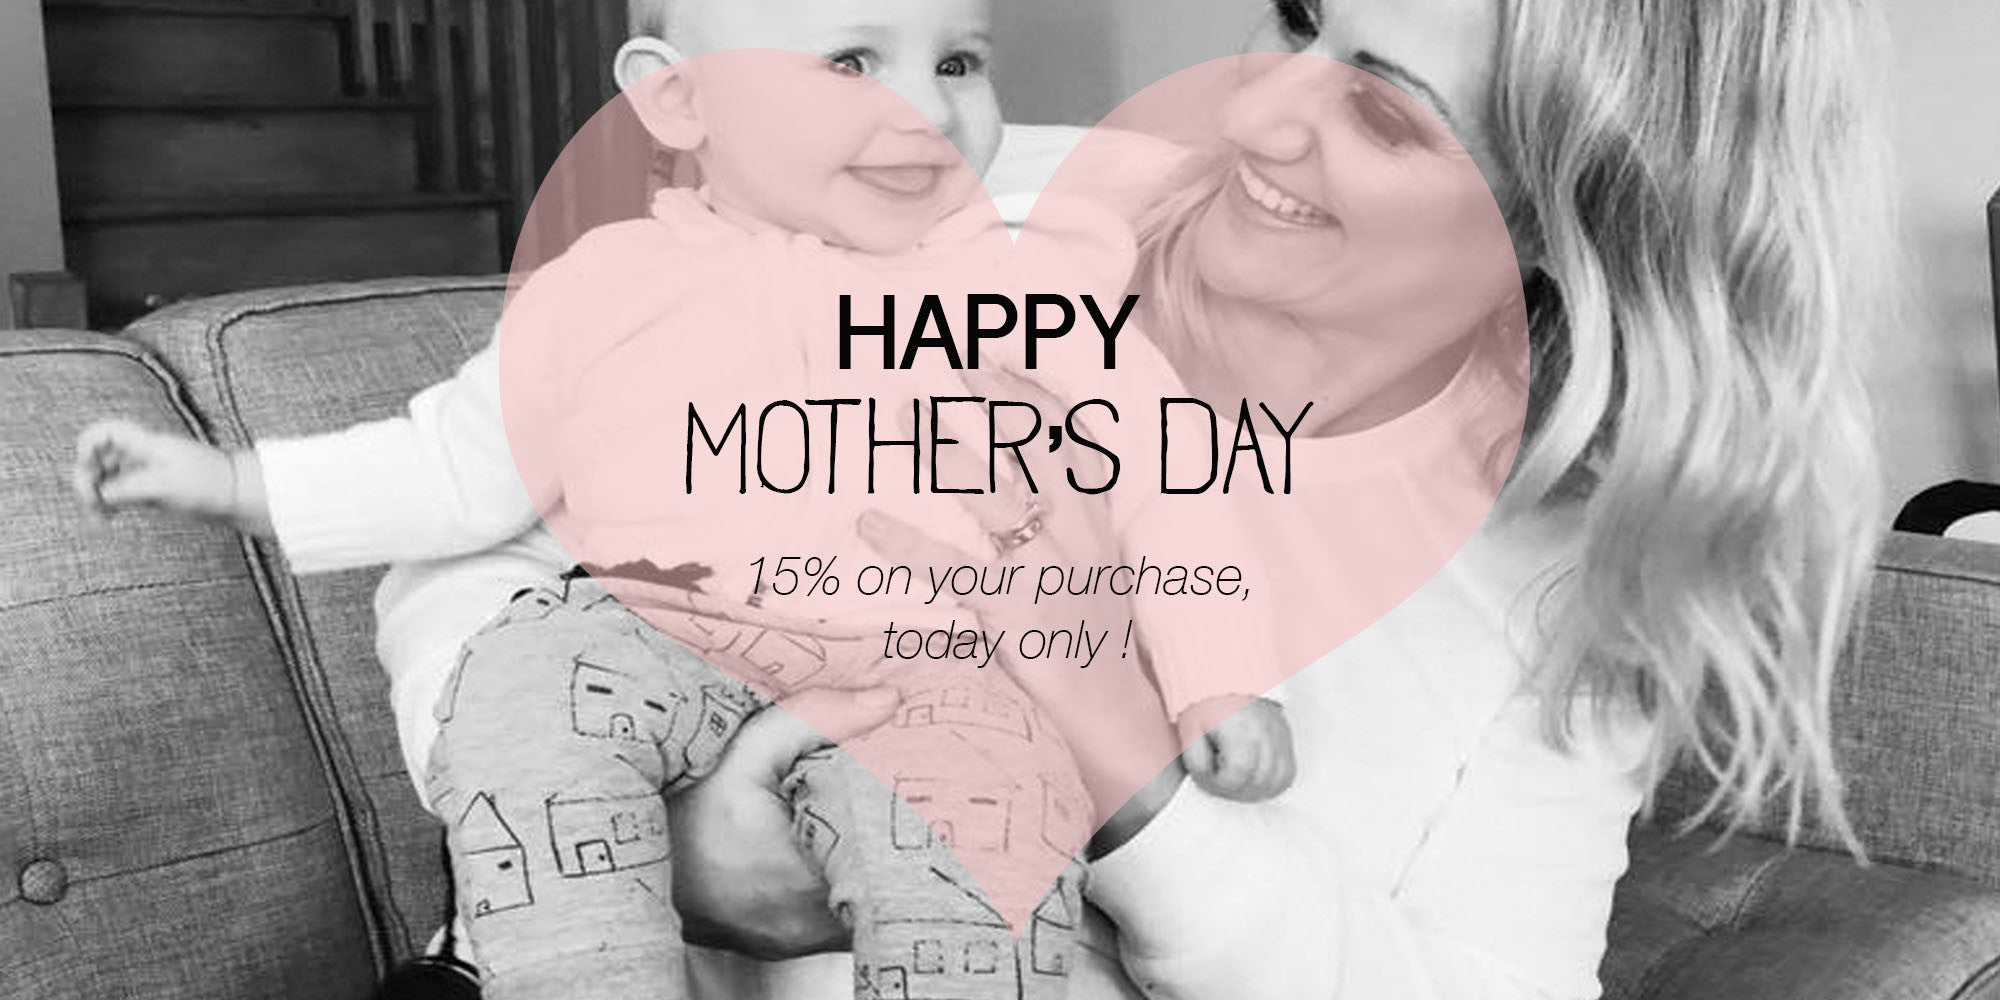 HAPPY MOTHER'S DAY - 15% OFF ON EVERYTHING